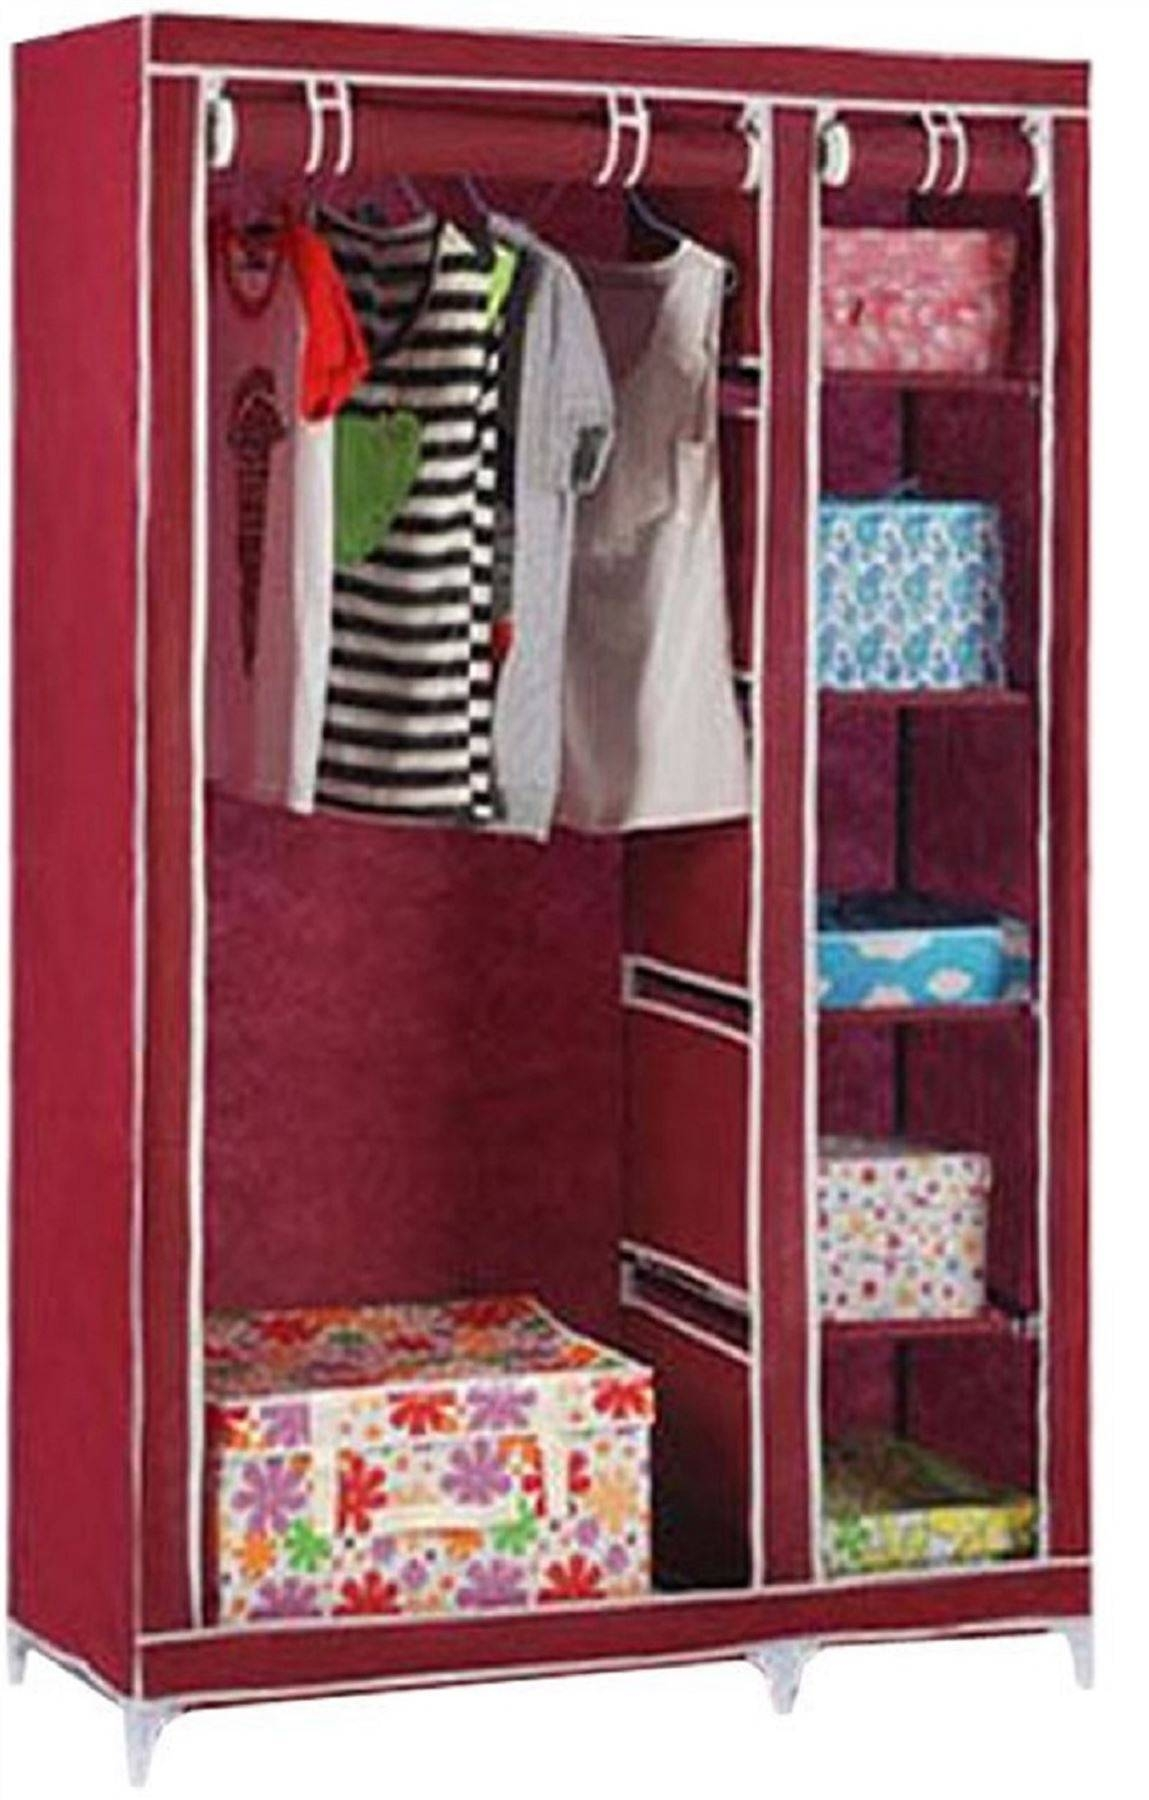 Vinsani Double Canvas Wardrobe Clothes Cupboard Storage W110Cm X intended for Double Canvas Wardrobe Rail Clothes Storage Cupboard (Image 22 of 30)